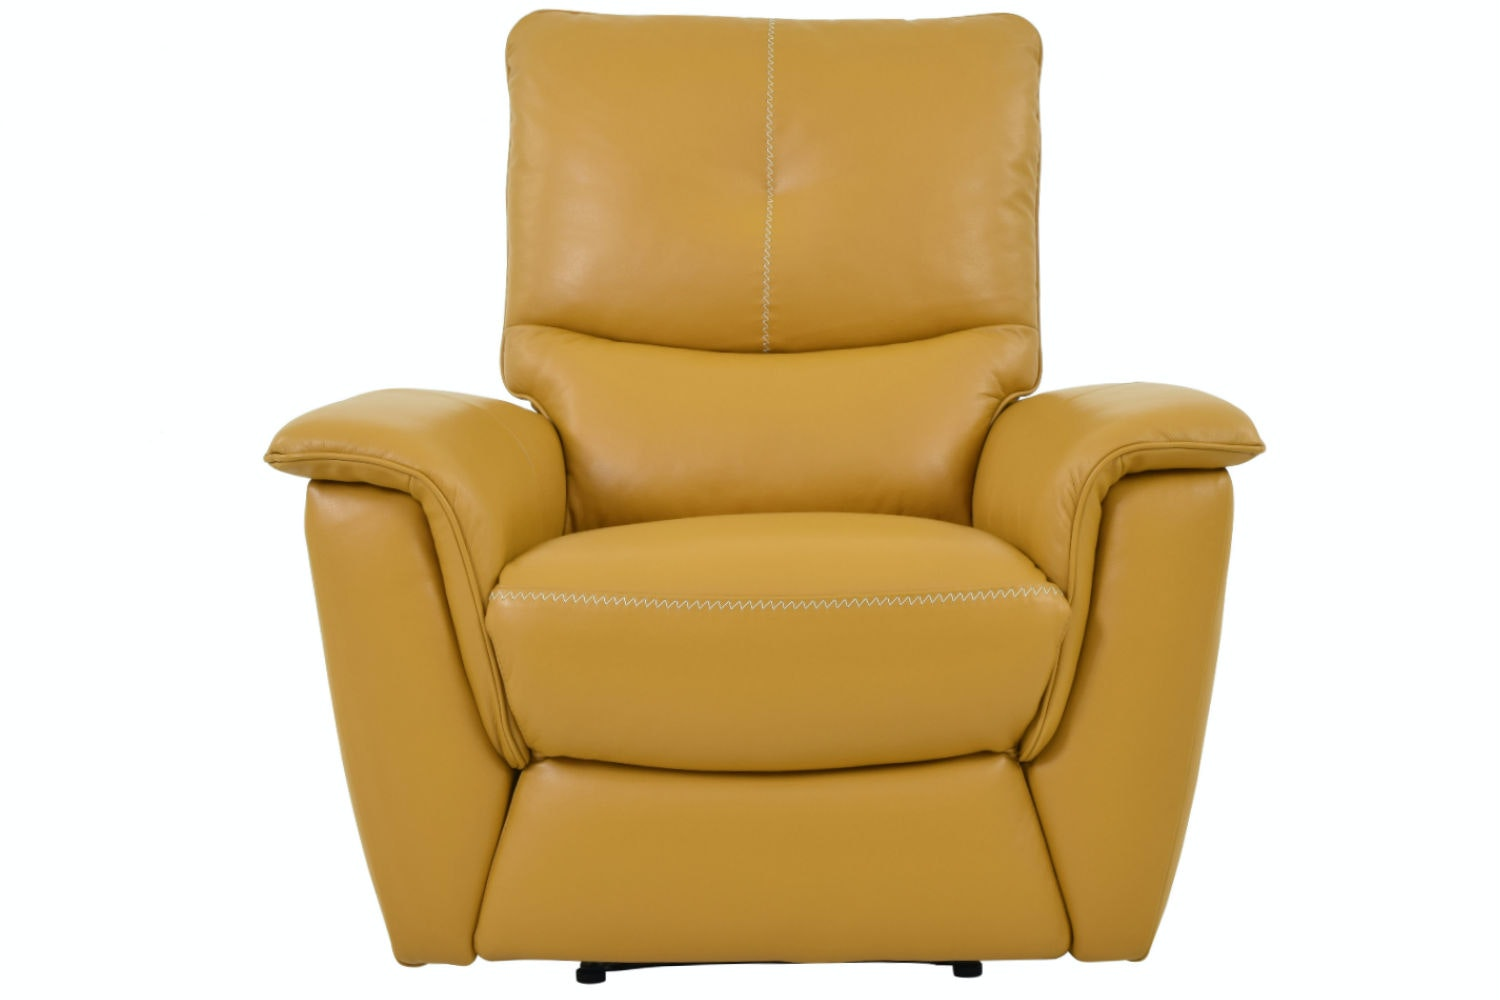 Miko Leather Recliner